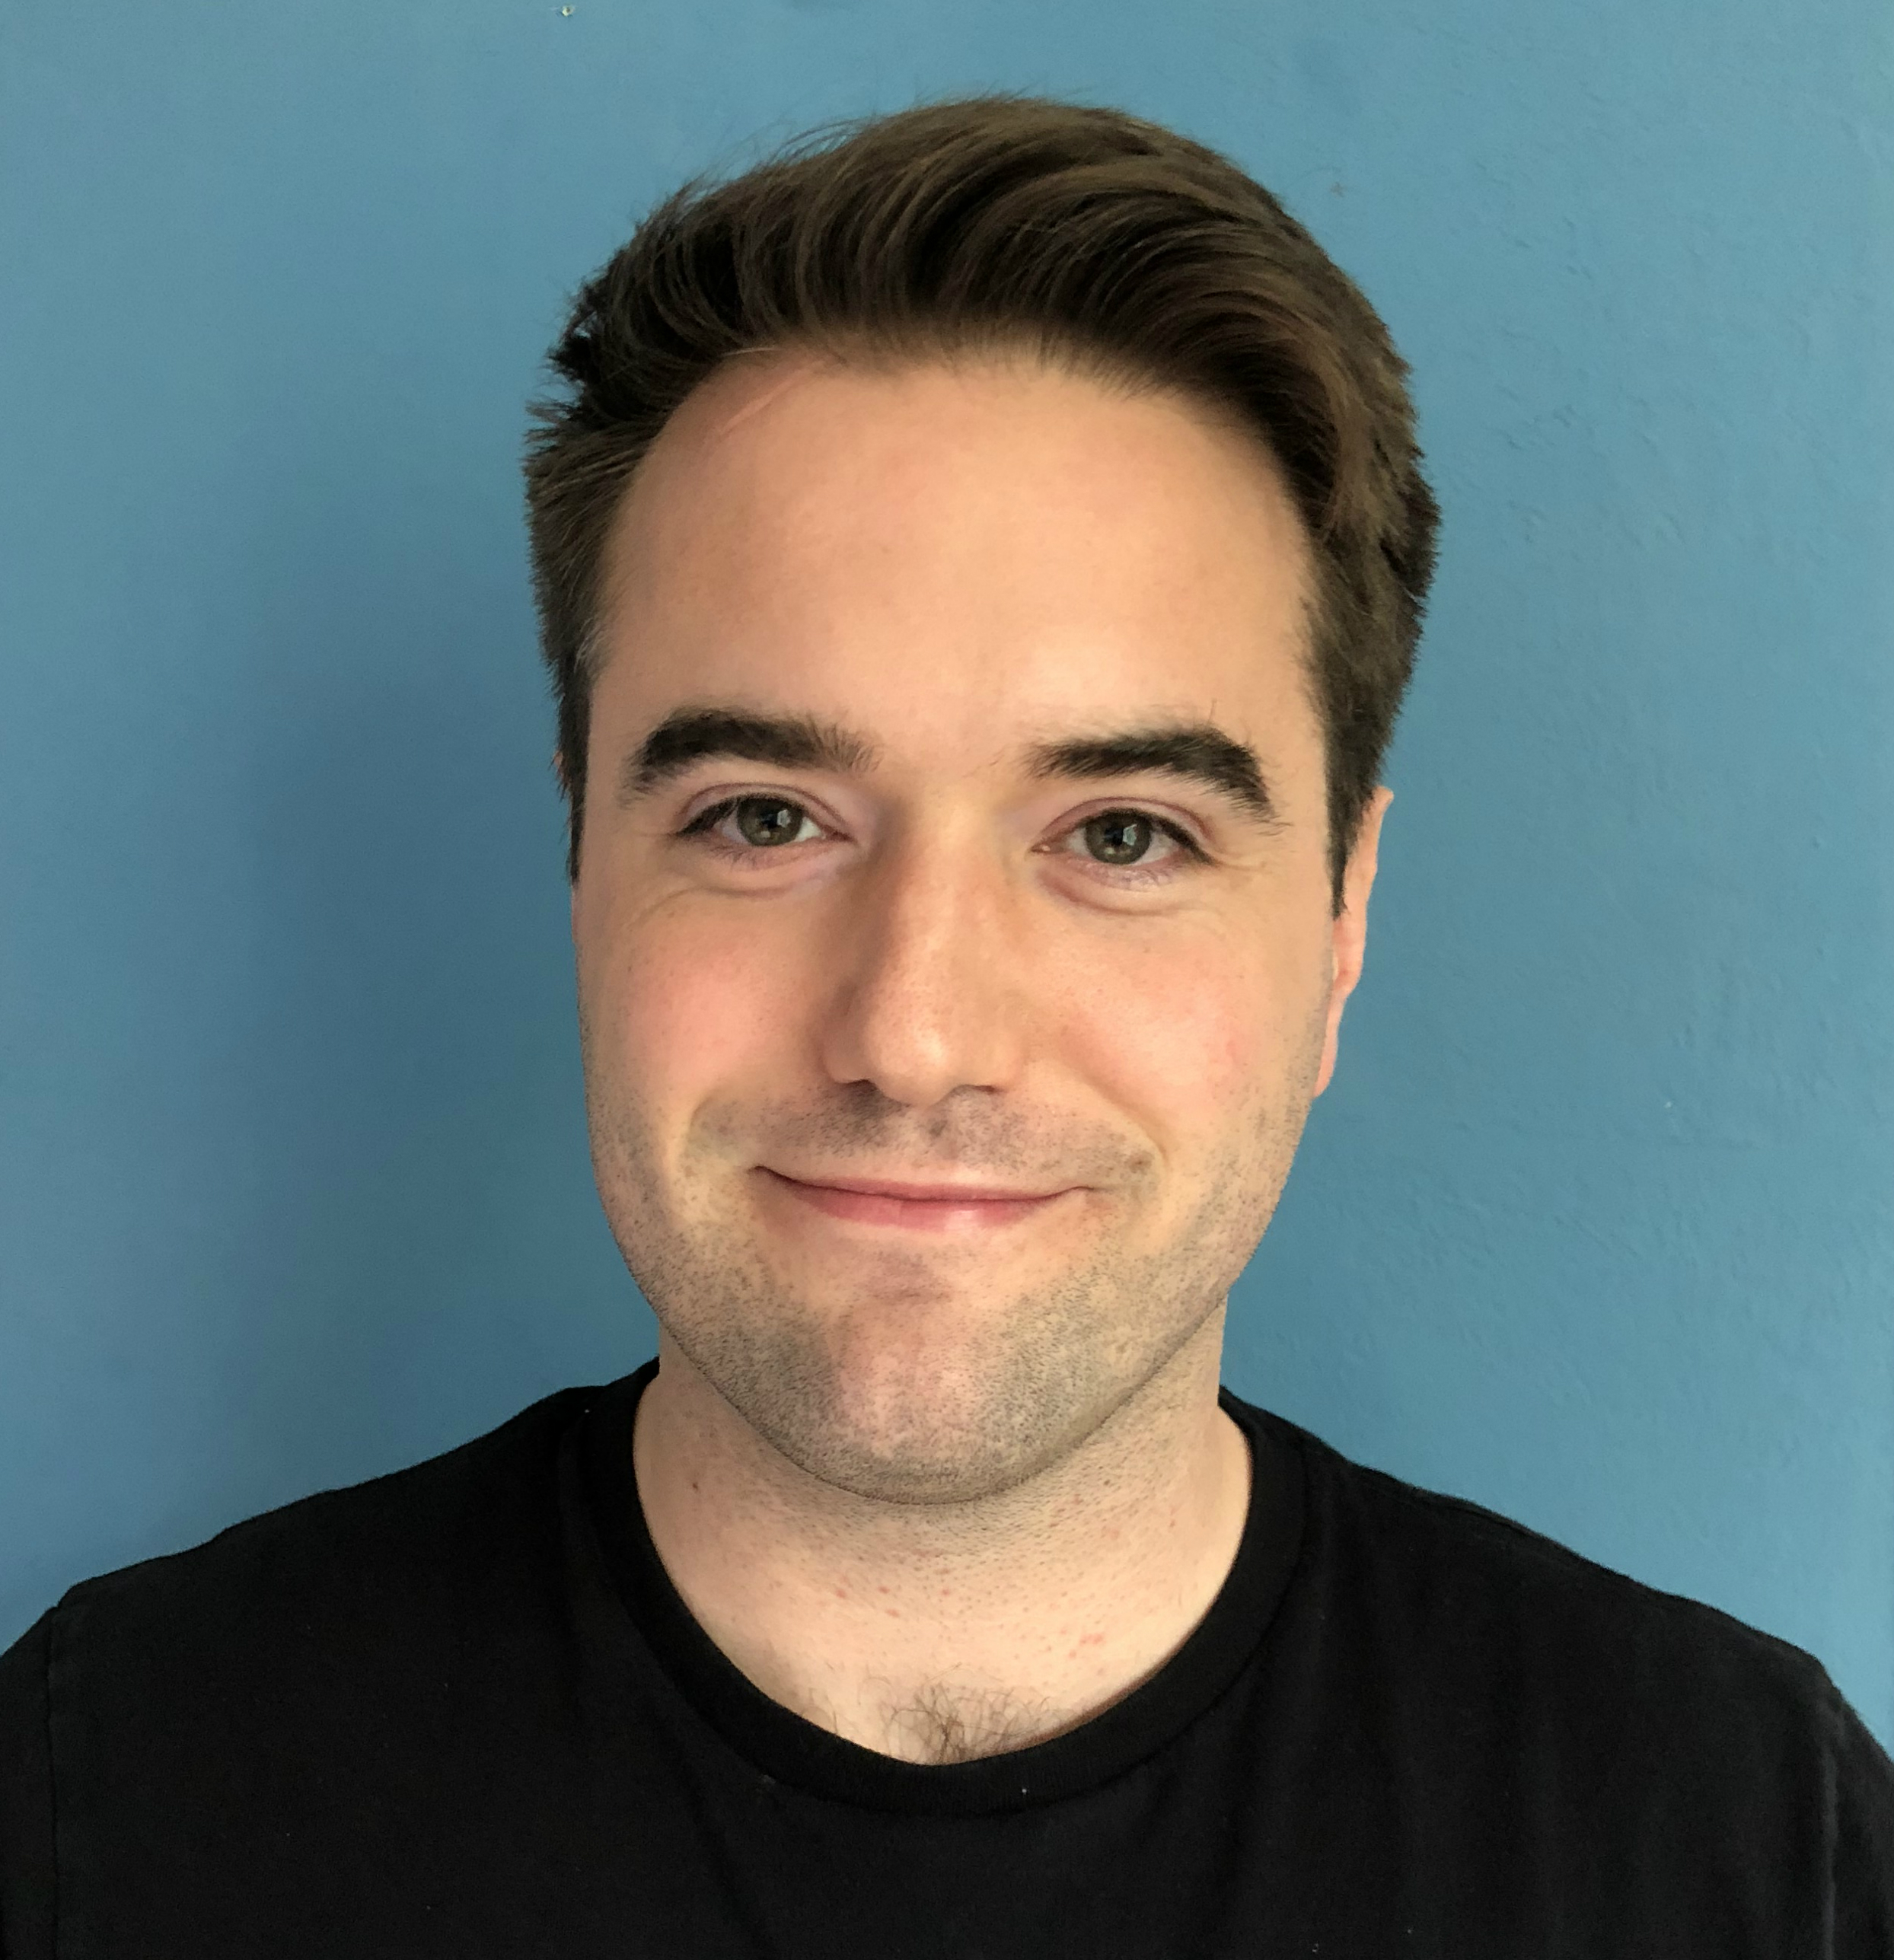 Substack CEO Chris Best